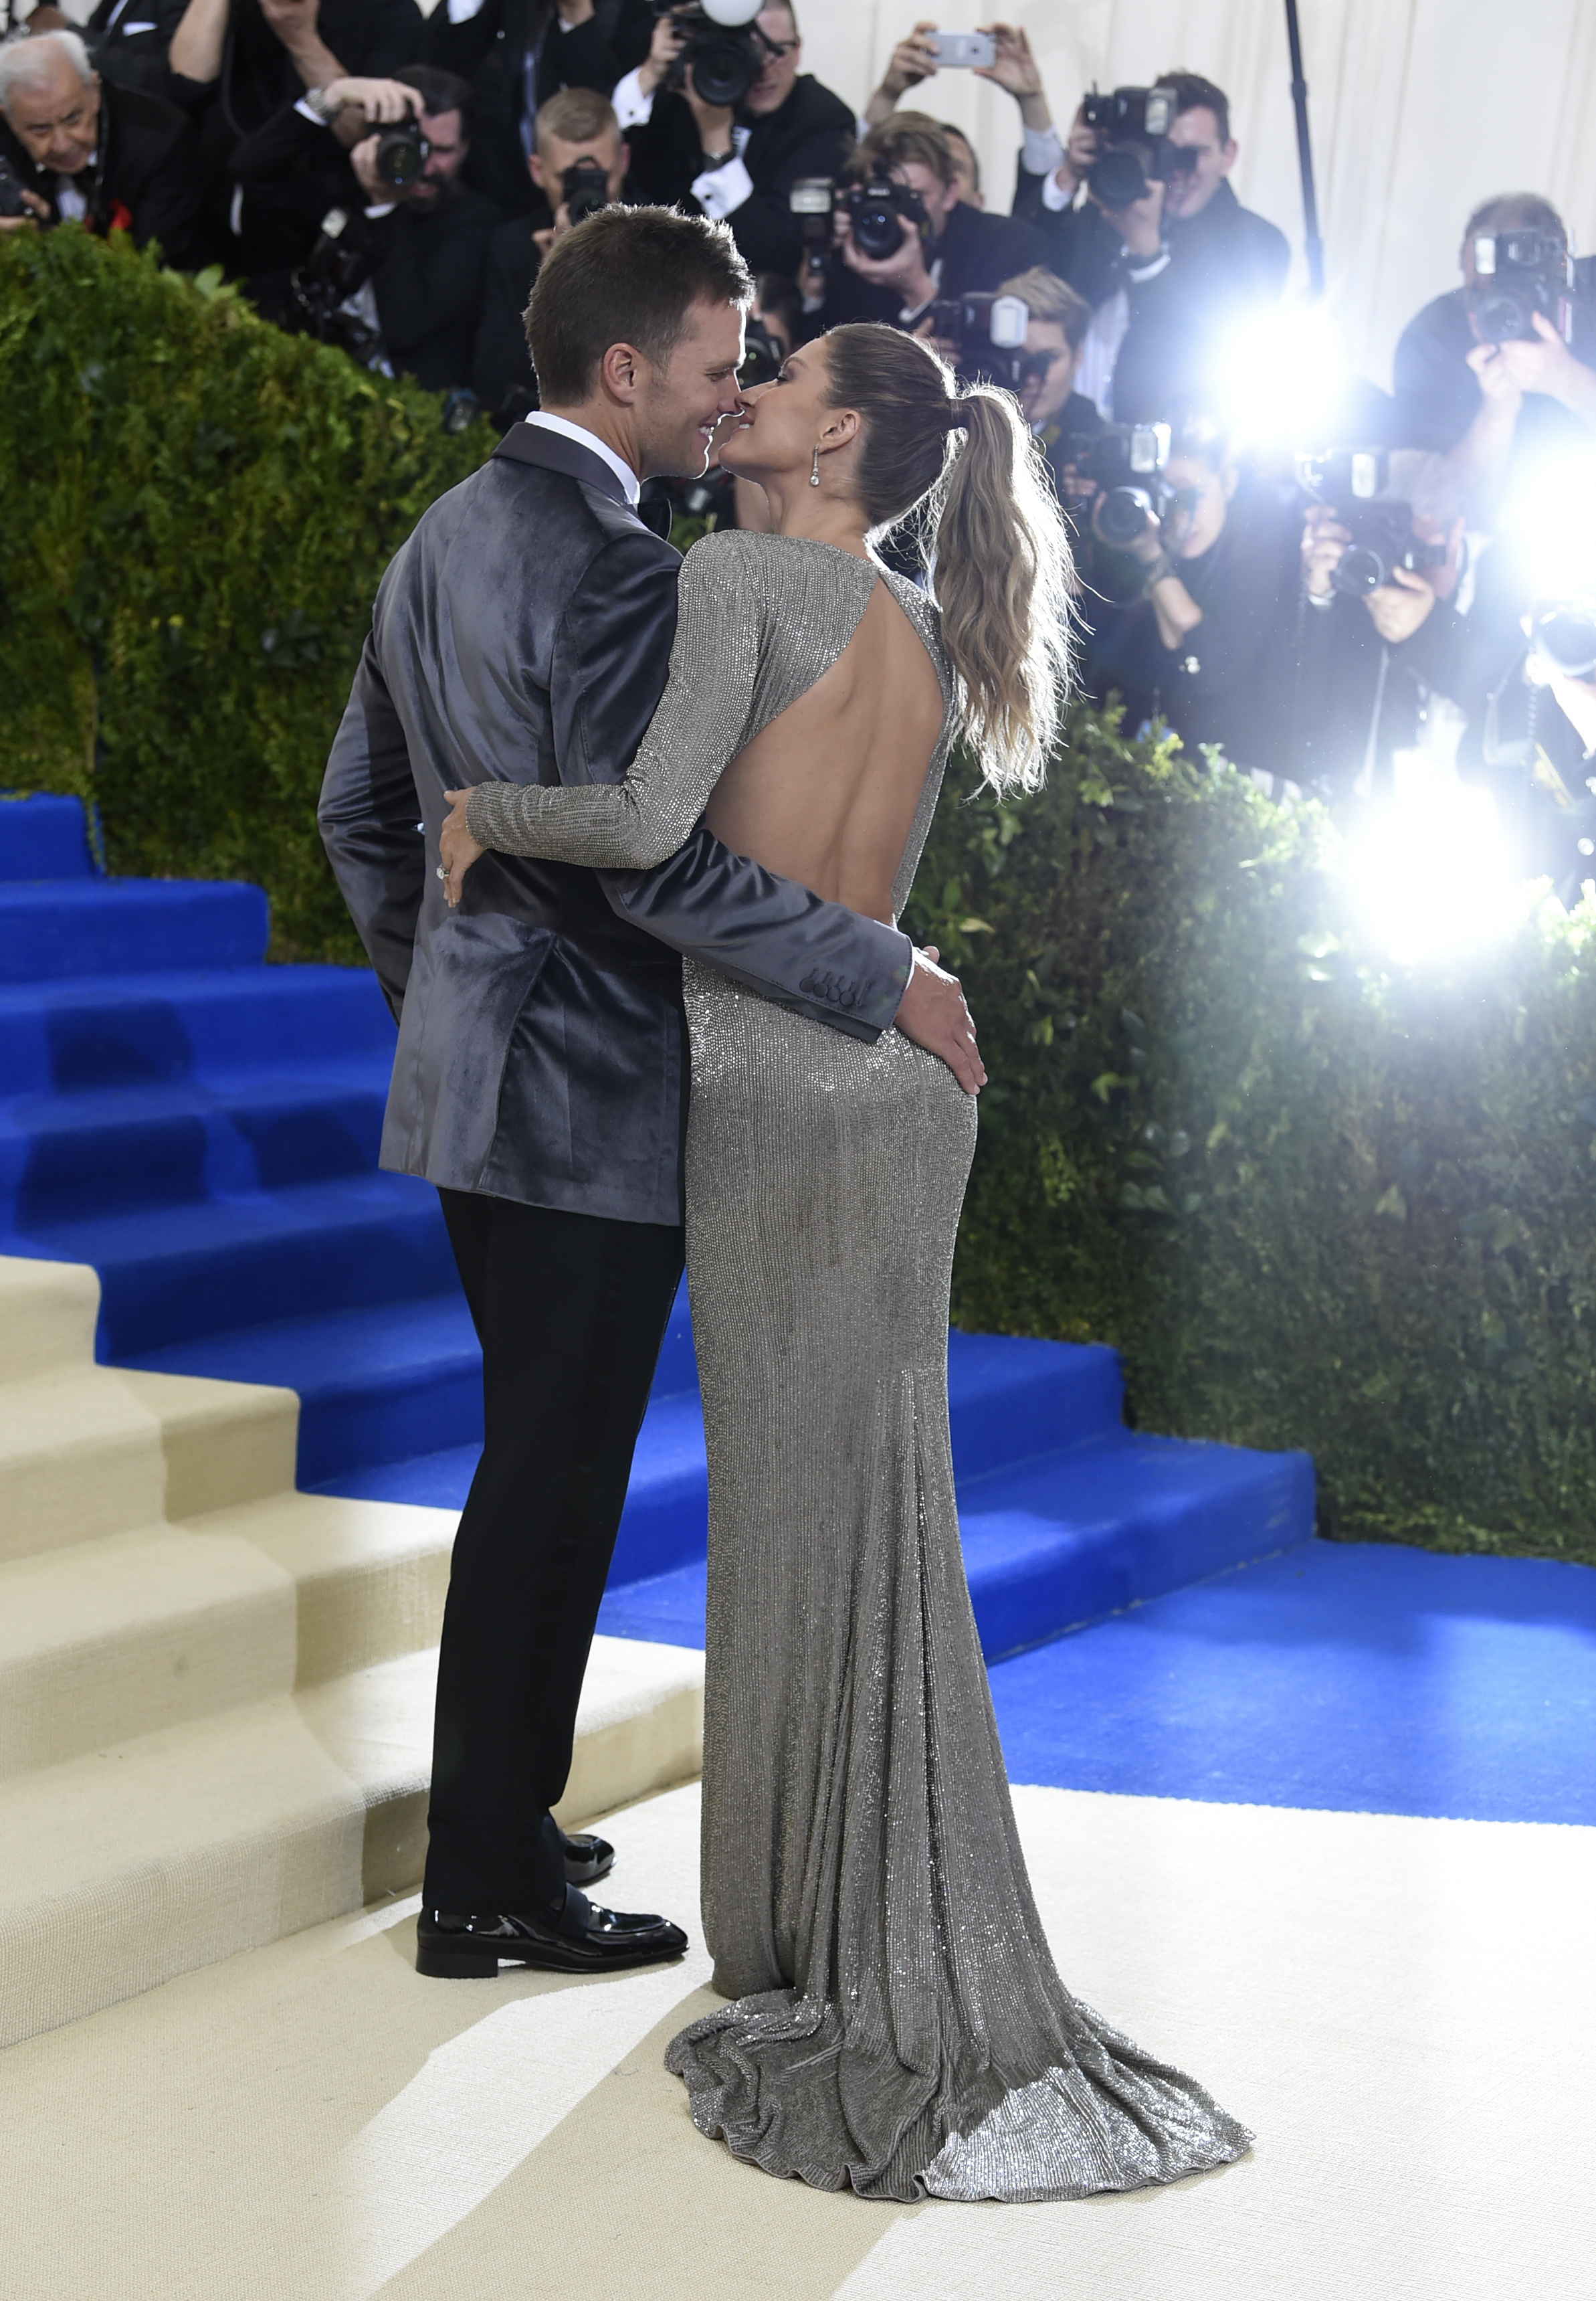 Tom Brady, left, and Gisele Bündchen attend The Metropolitan Museum of Art's Costume Institute benefit gala celebrating the opening of the Rei Kawakubo/Comme des Garçons: Art of the In-Between exhibition on Monday, May 1, 2017, in New York. (Photo by Evan Agostini/Invision/AP)